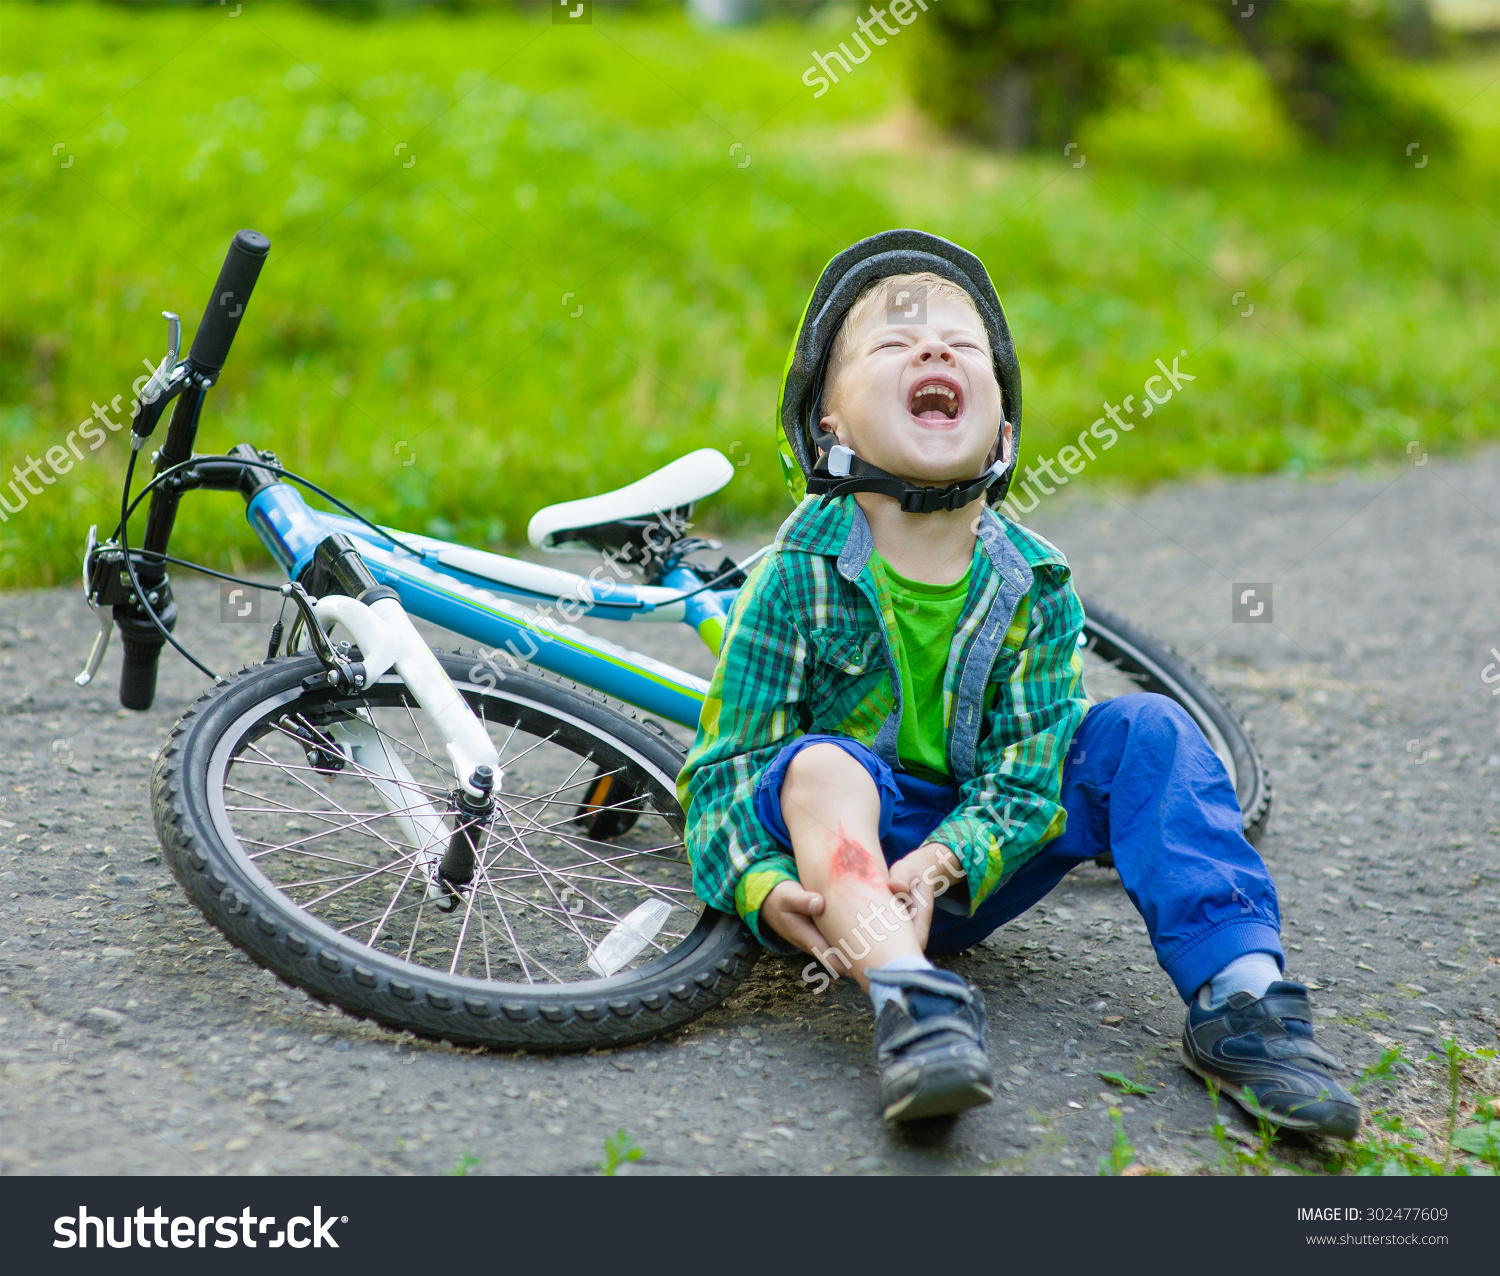 Boy Fell Bike Park Stock Photo 302477609.